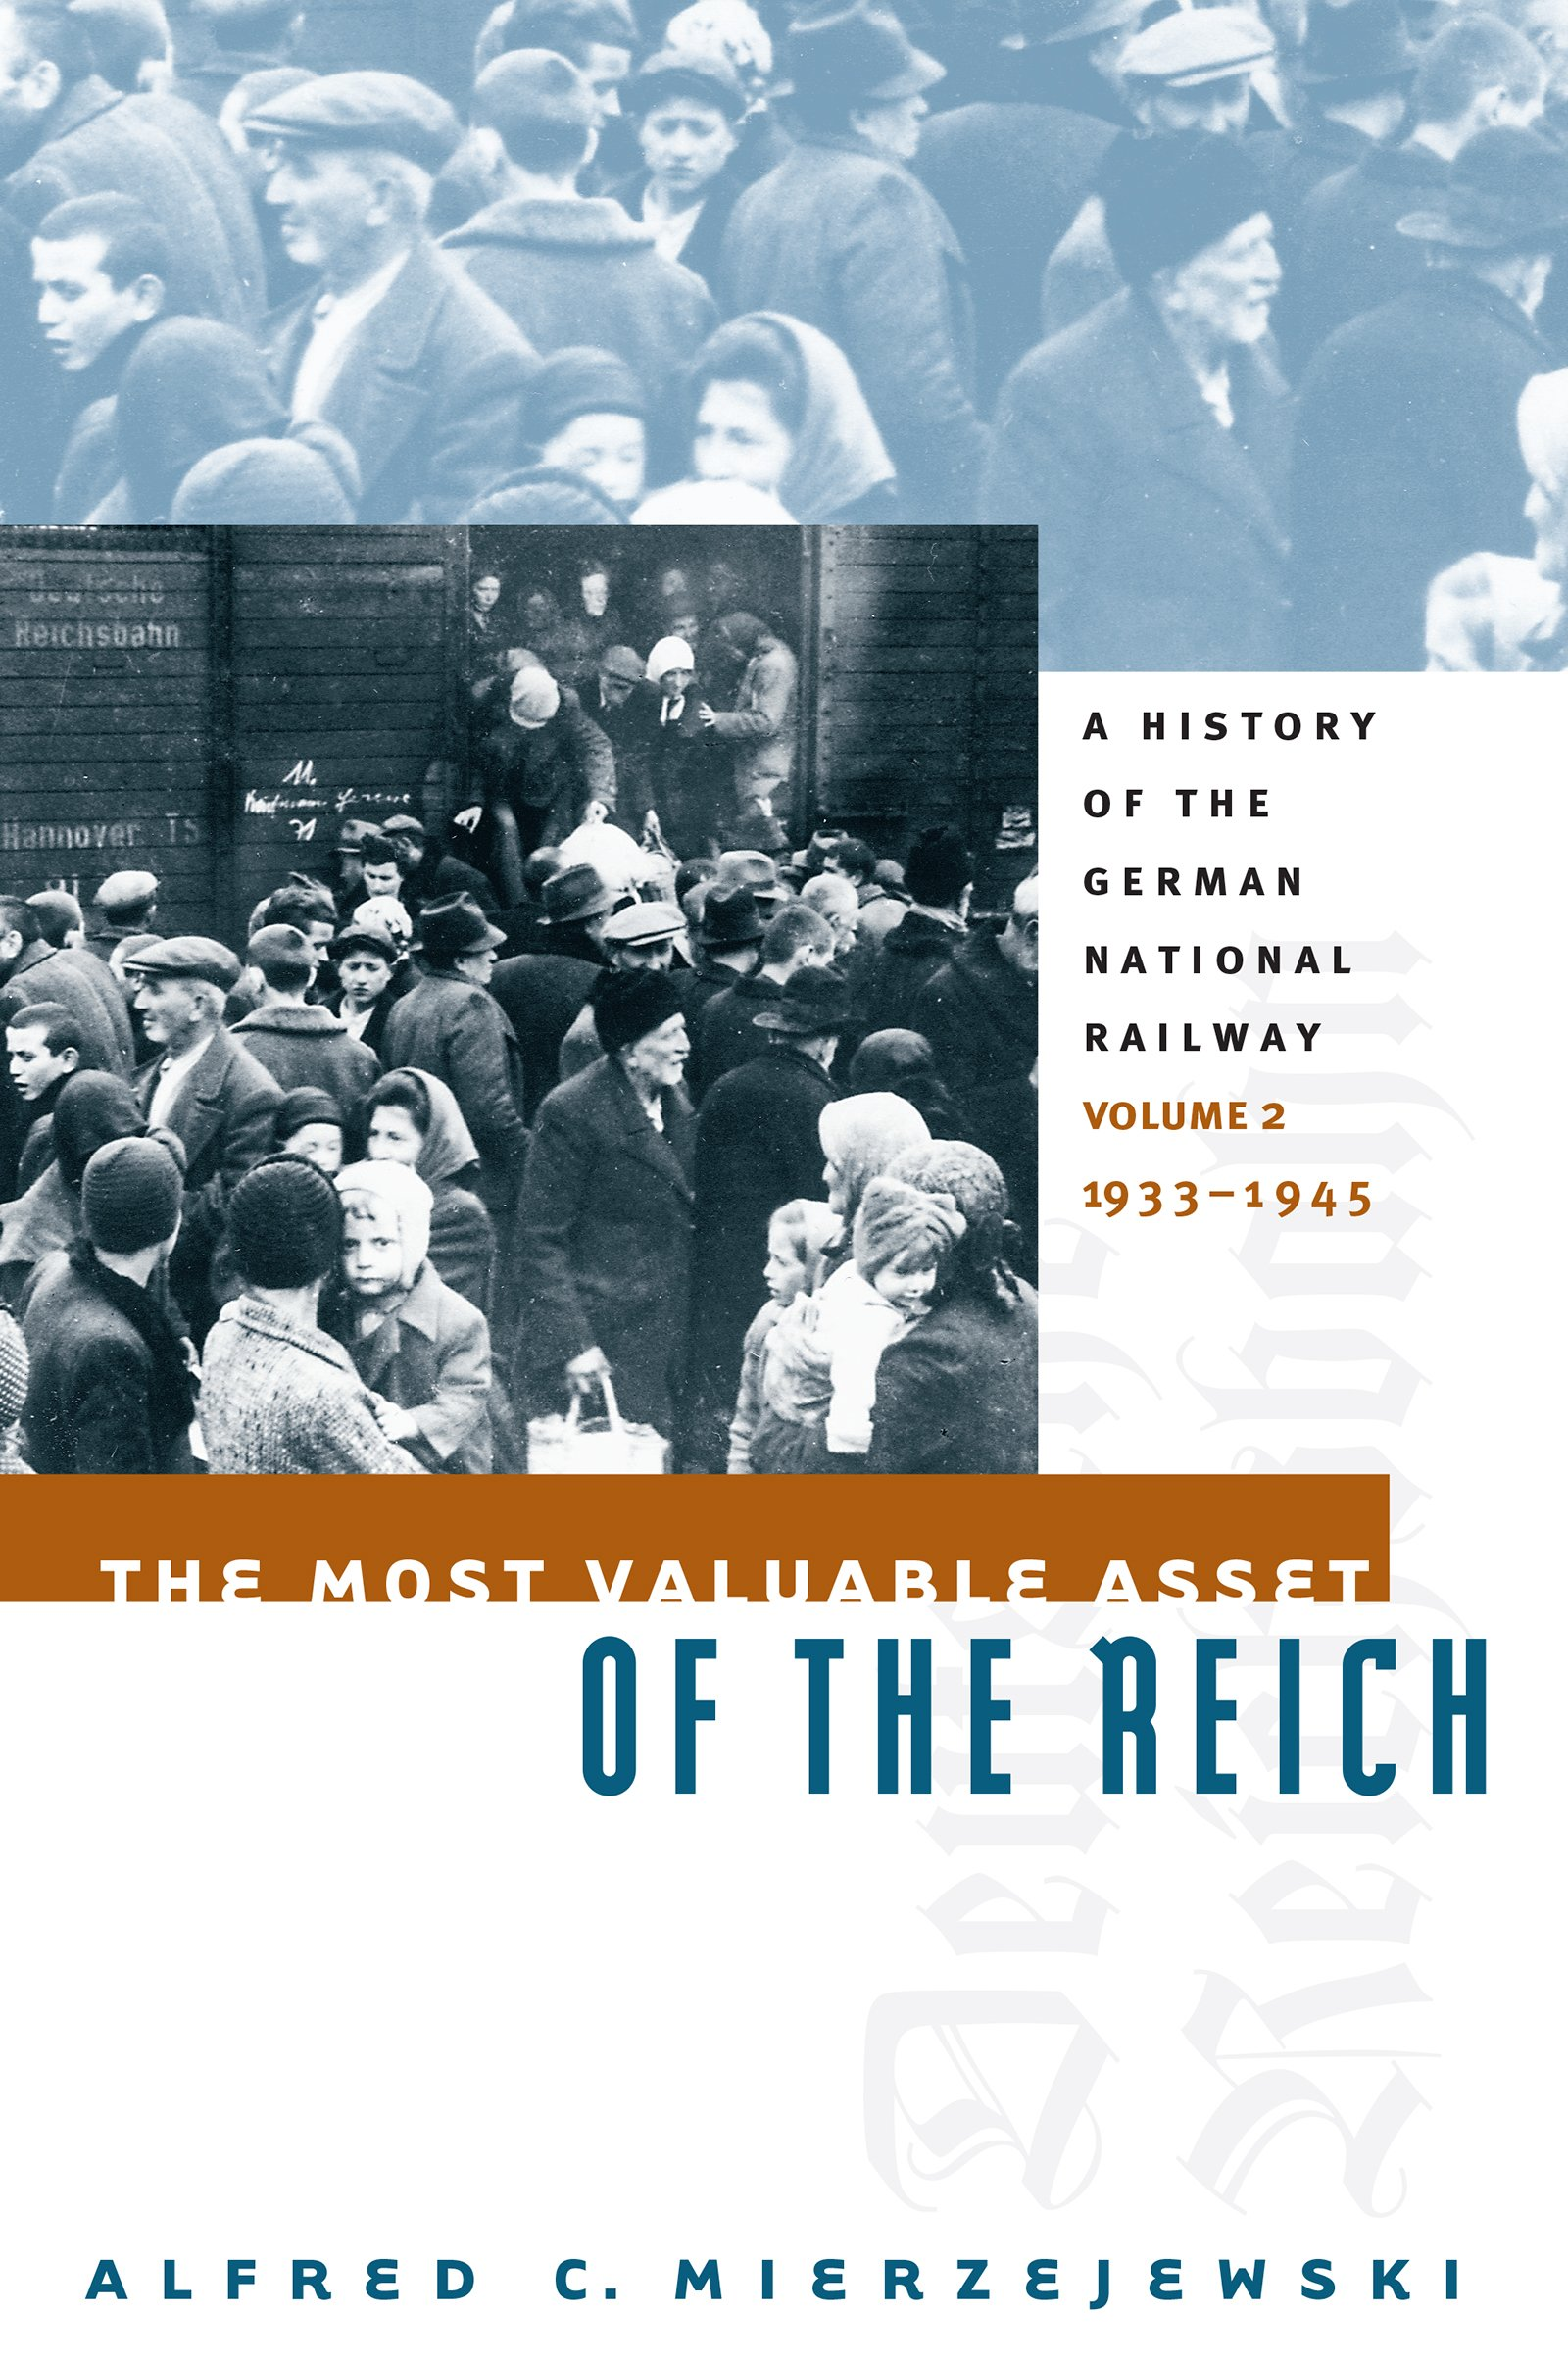 Image OfThe Most Valuable Asset Of The Reich: A History Of The German National Railway Volume 2, 1933-1945